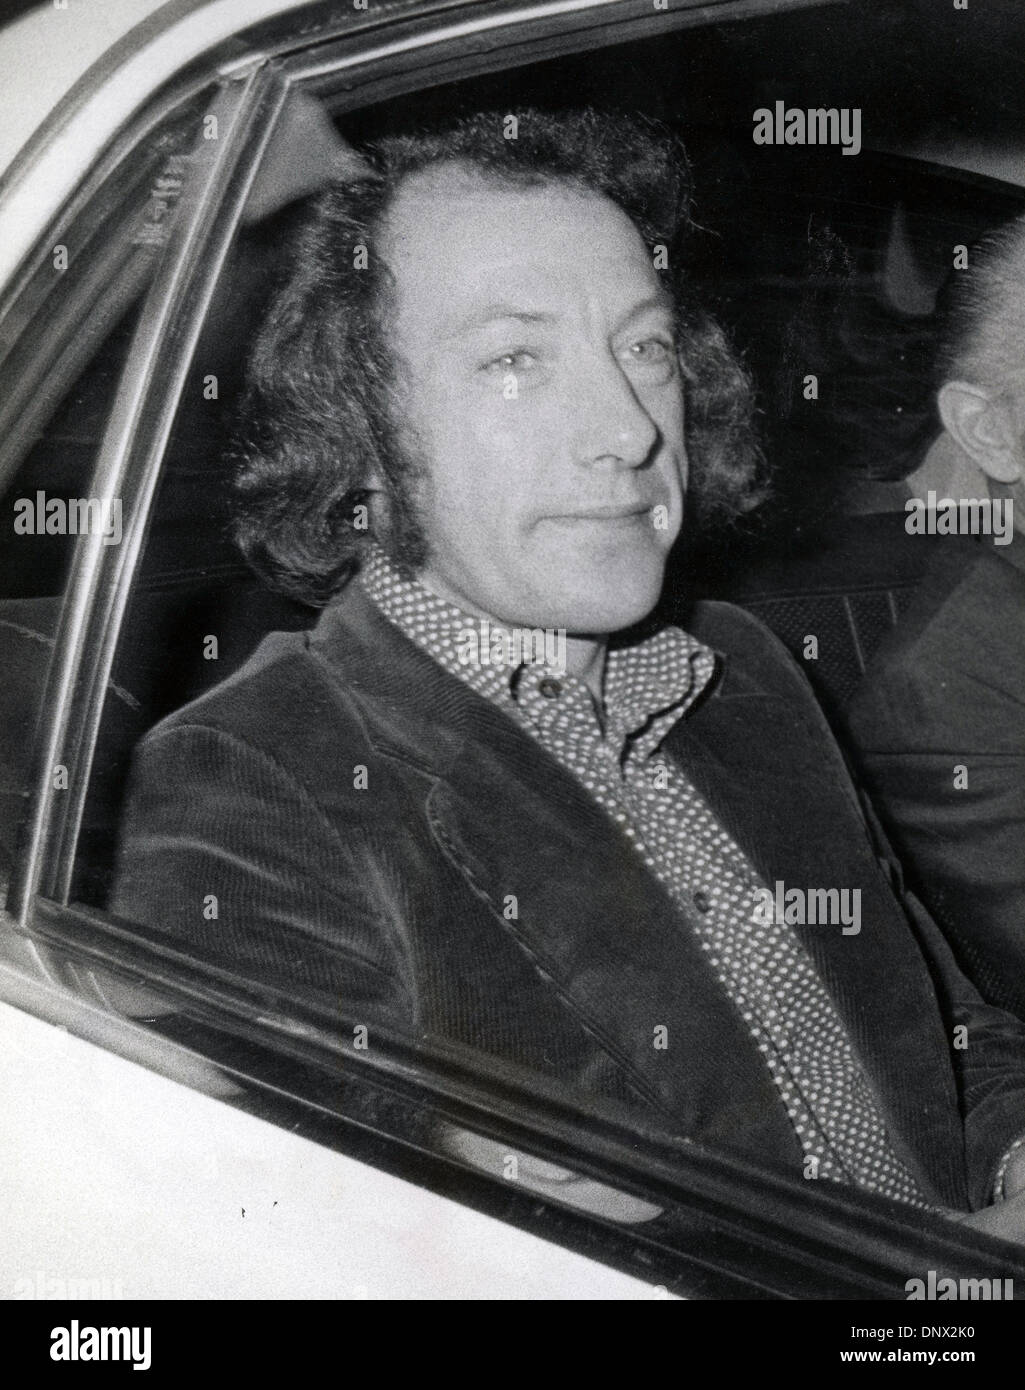 Apr 23, 1974 - London, England, United Kingdom - RONALD MILHENCH on his way to the Wolverhampton Magistrates Court in a police car from the Winson Green prison to stand trial for trying to obtain 25,000 pounds by means of a criminal deception from the Associated Newspapers. (Credit Image: © KEYSTONE Pictures/ZUMAPRESS.com) - Stock Image